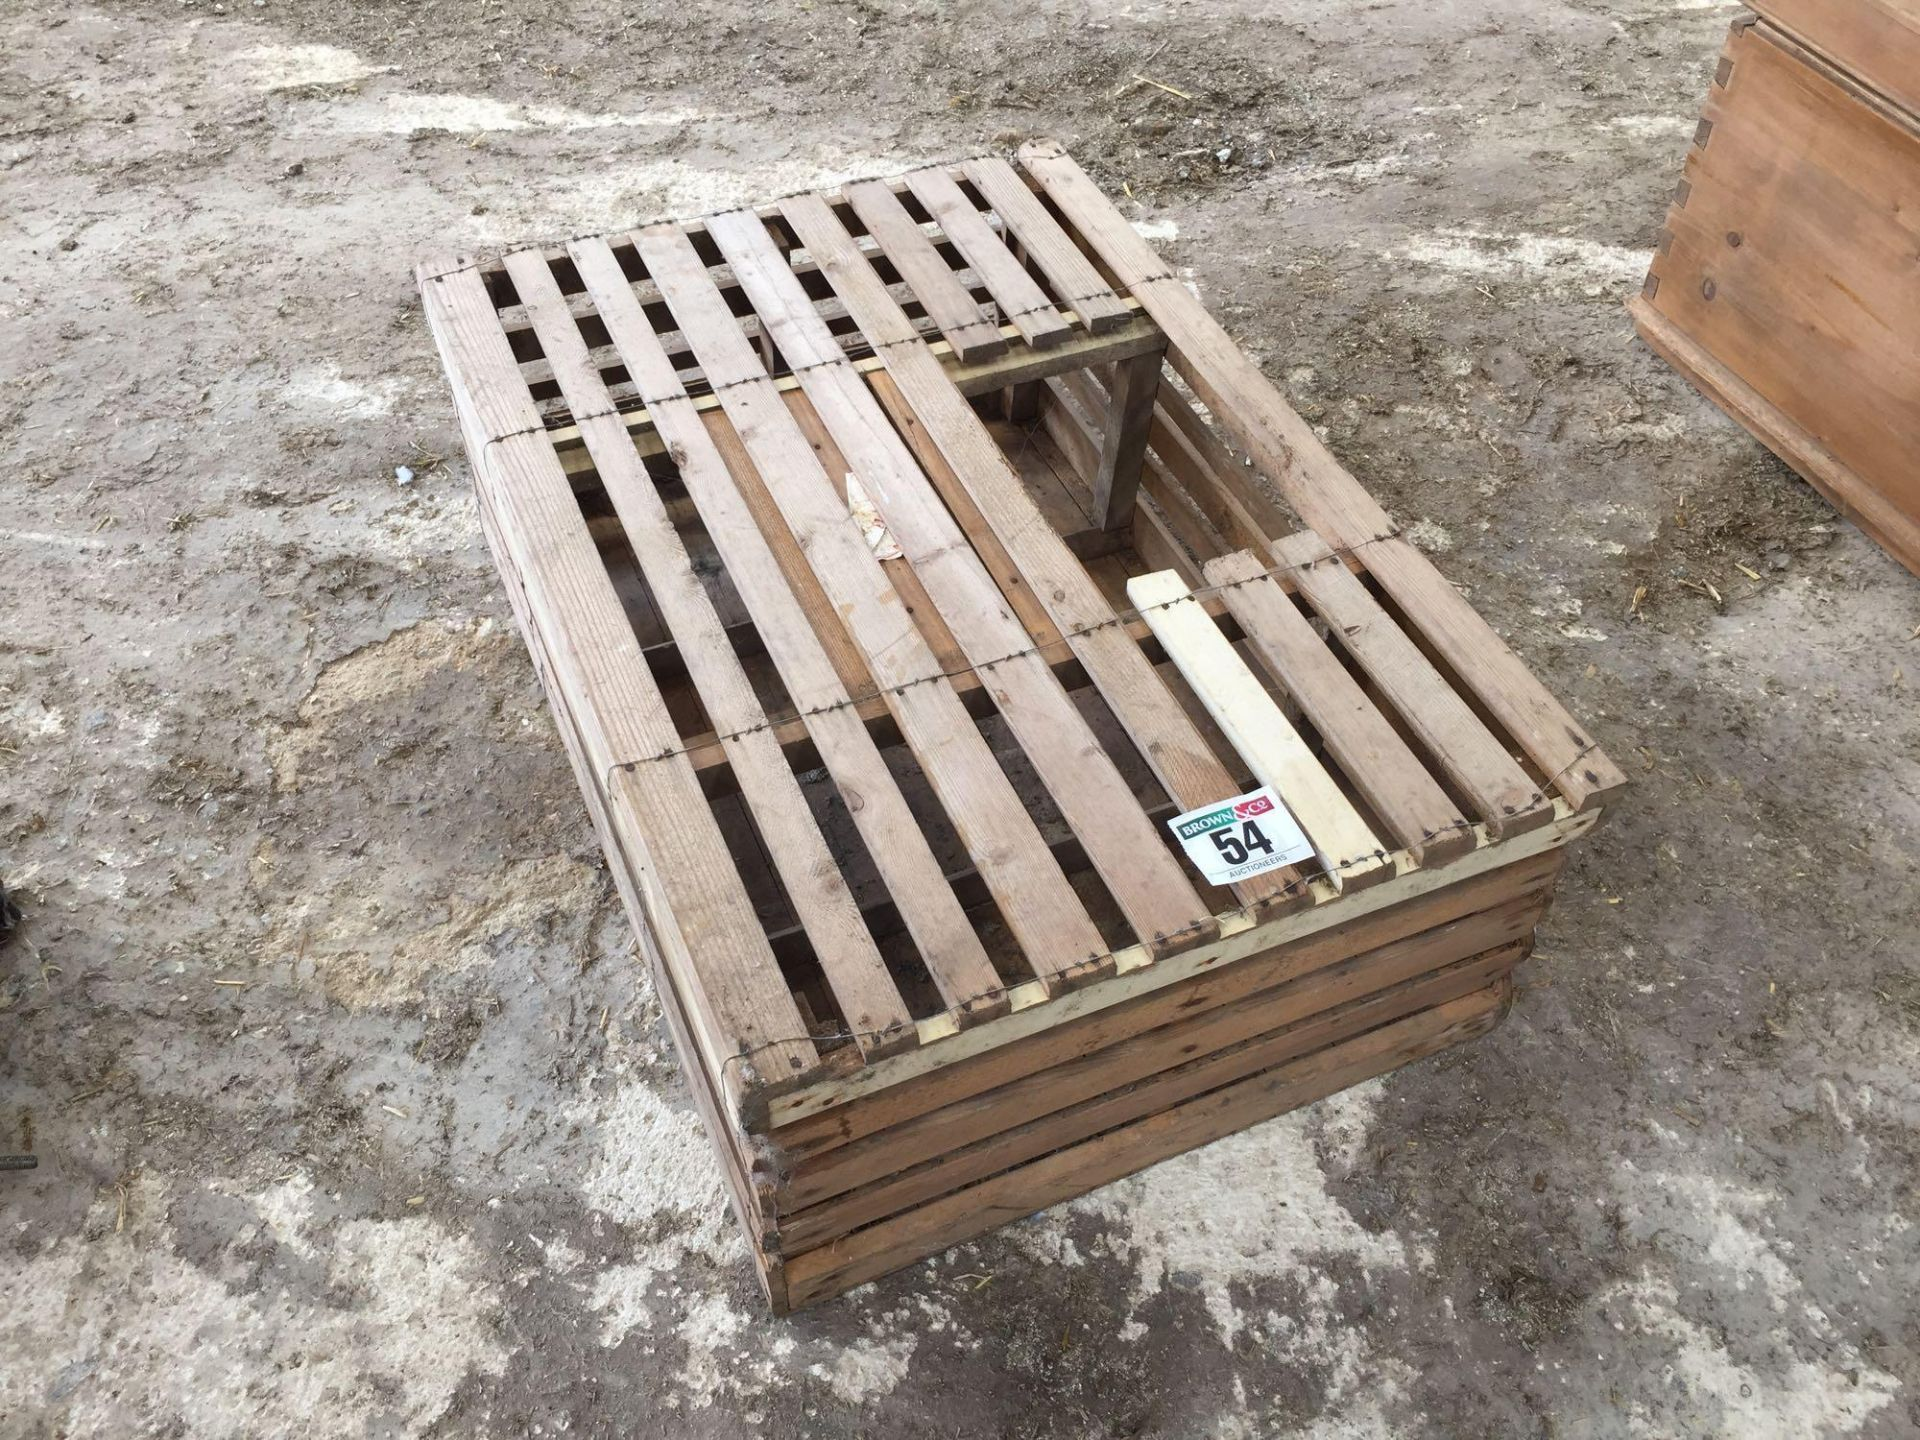 Lot 54 - Poultry crate